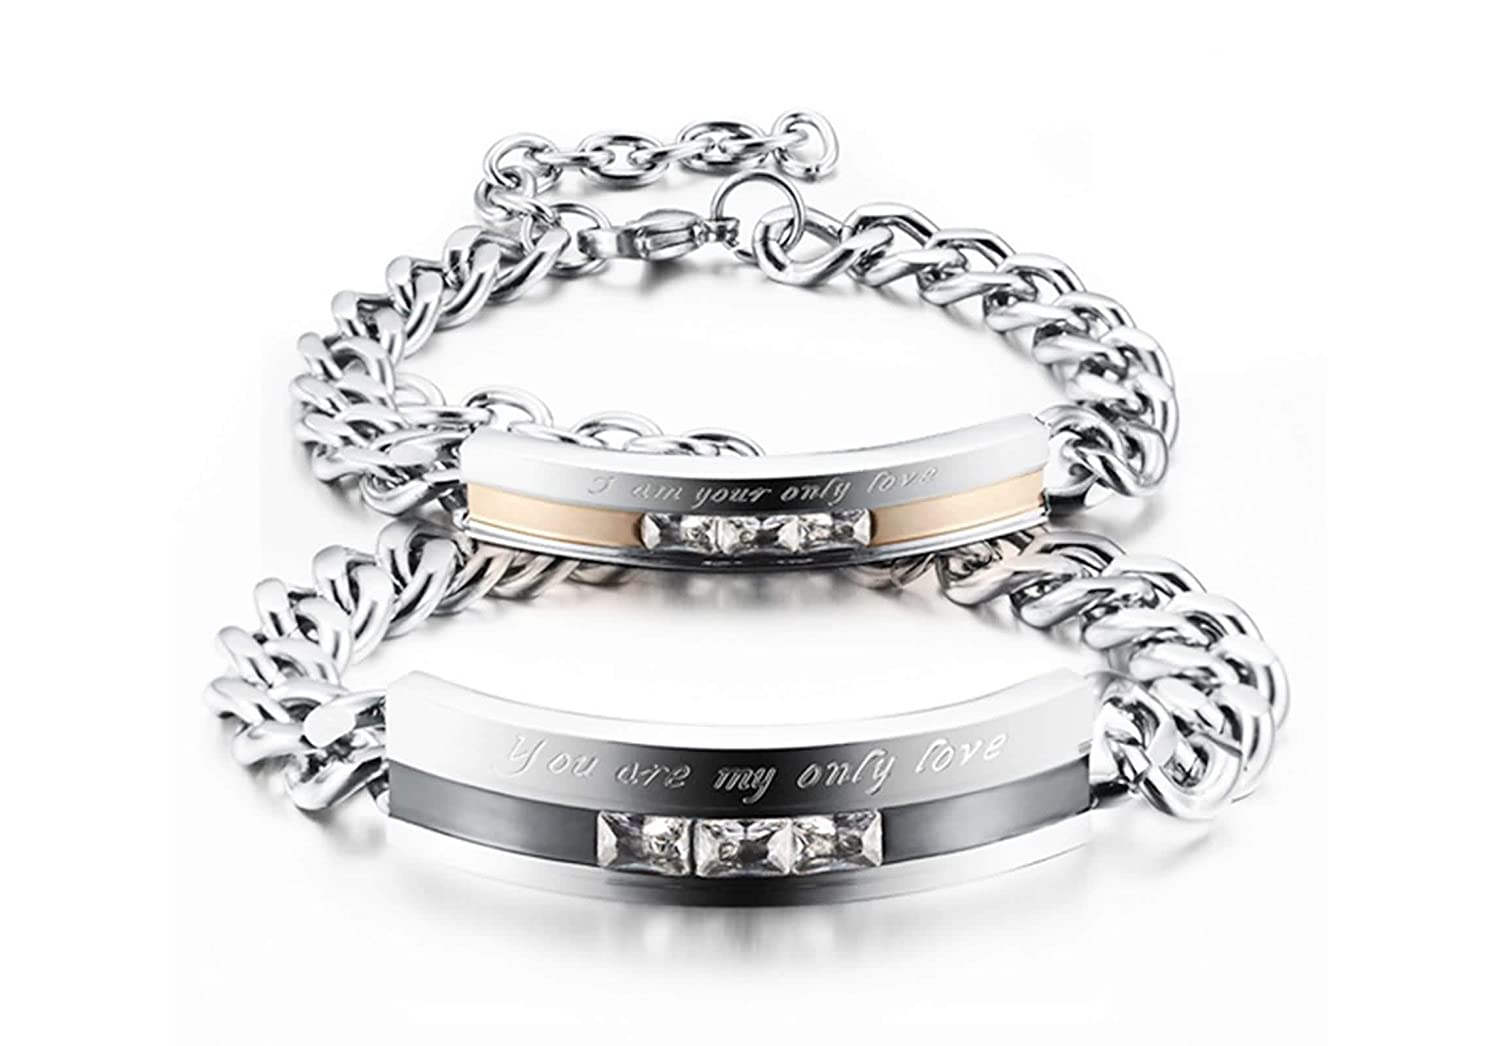 Aokarry Jewelry His and Hers Stainless Steel Chain Bracelet Cubic Zirconia You are My only Love